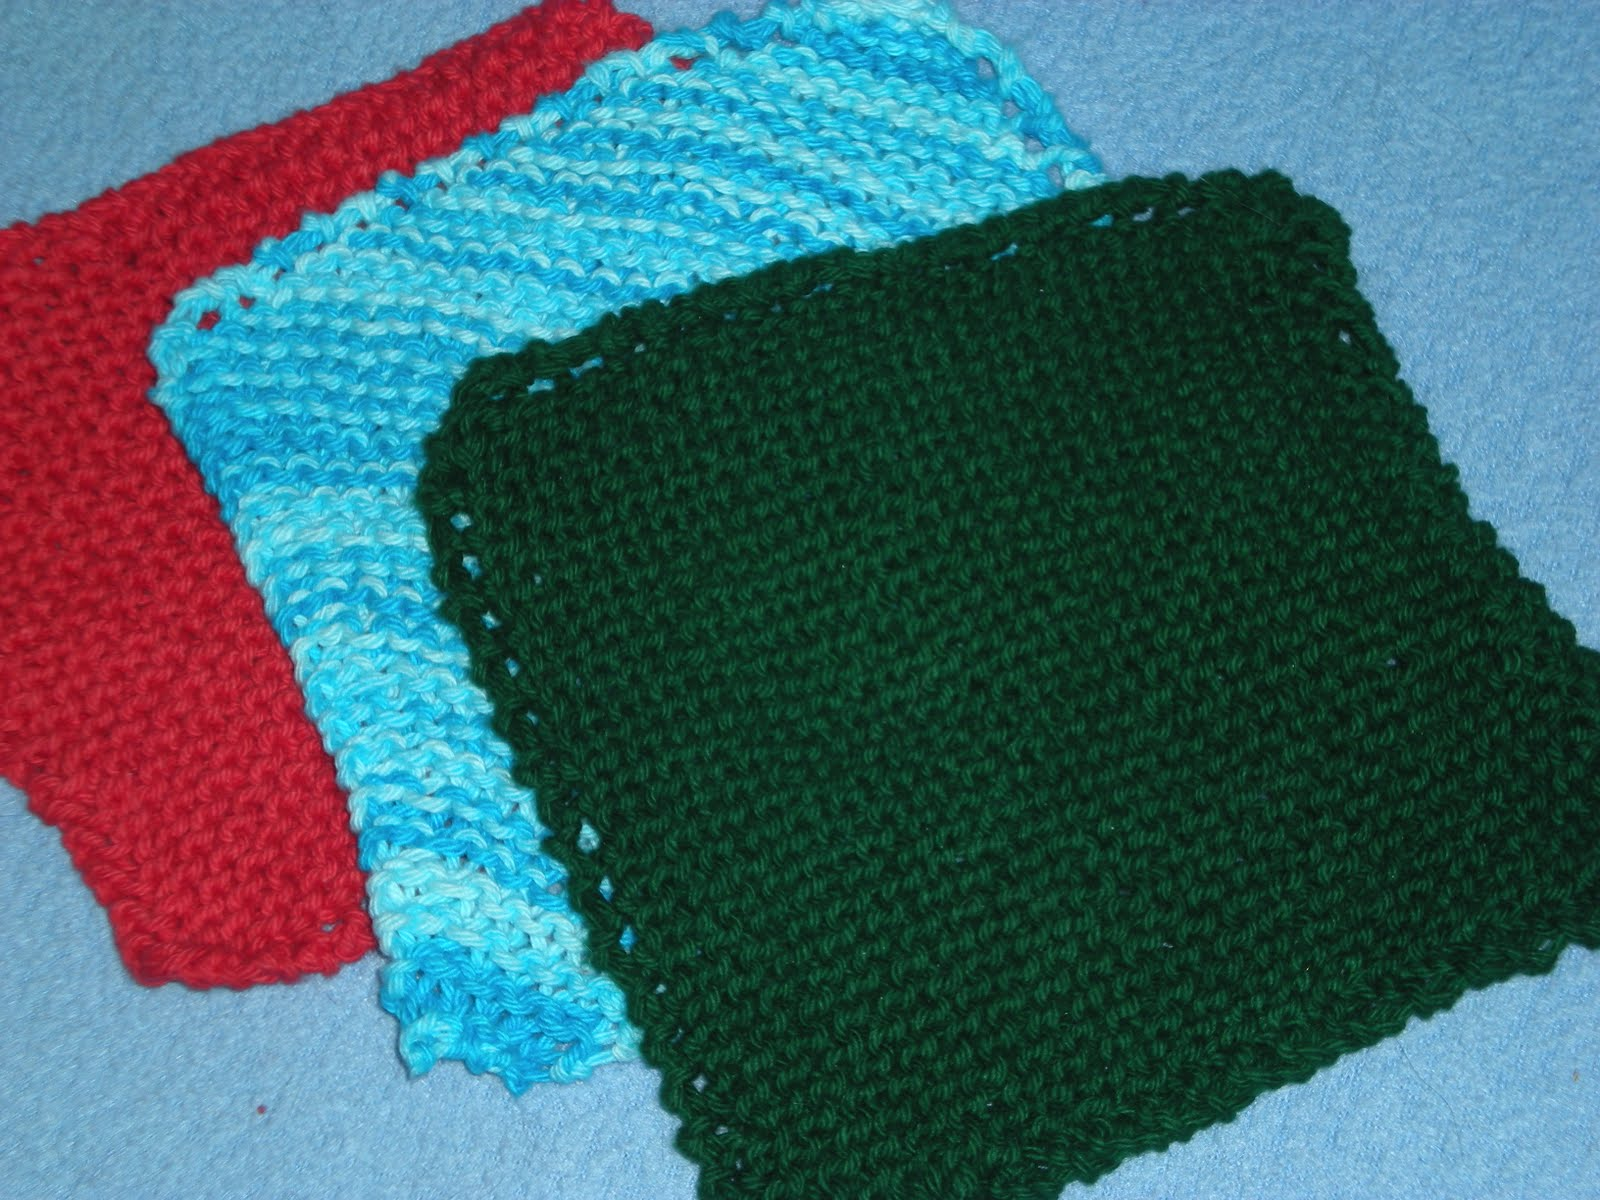 Knitting Dishcloths Easy : Free knit dishcloth patterns «